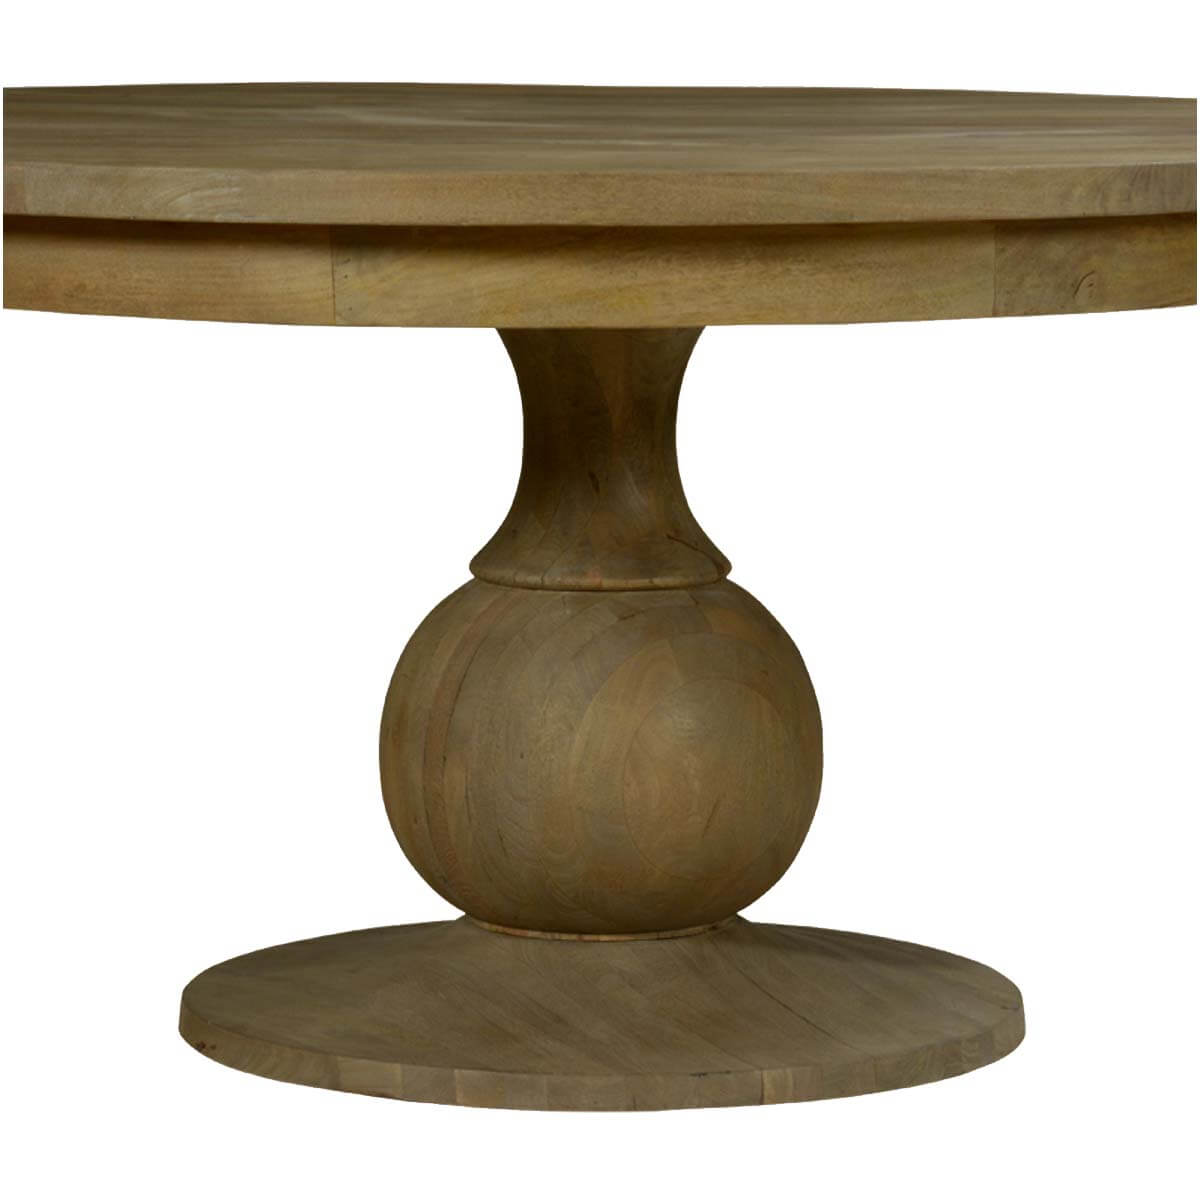 "Smokey Tan Solid Mango Wood 60"" Round Pedestal Dining Table"